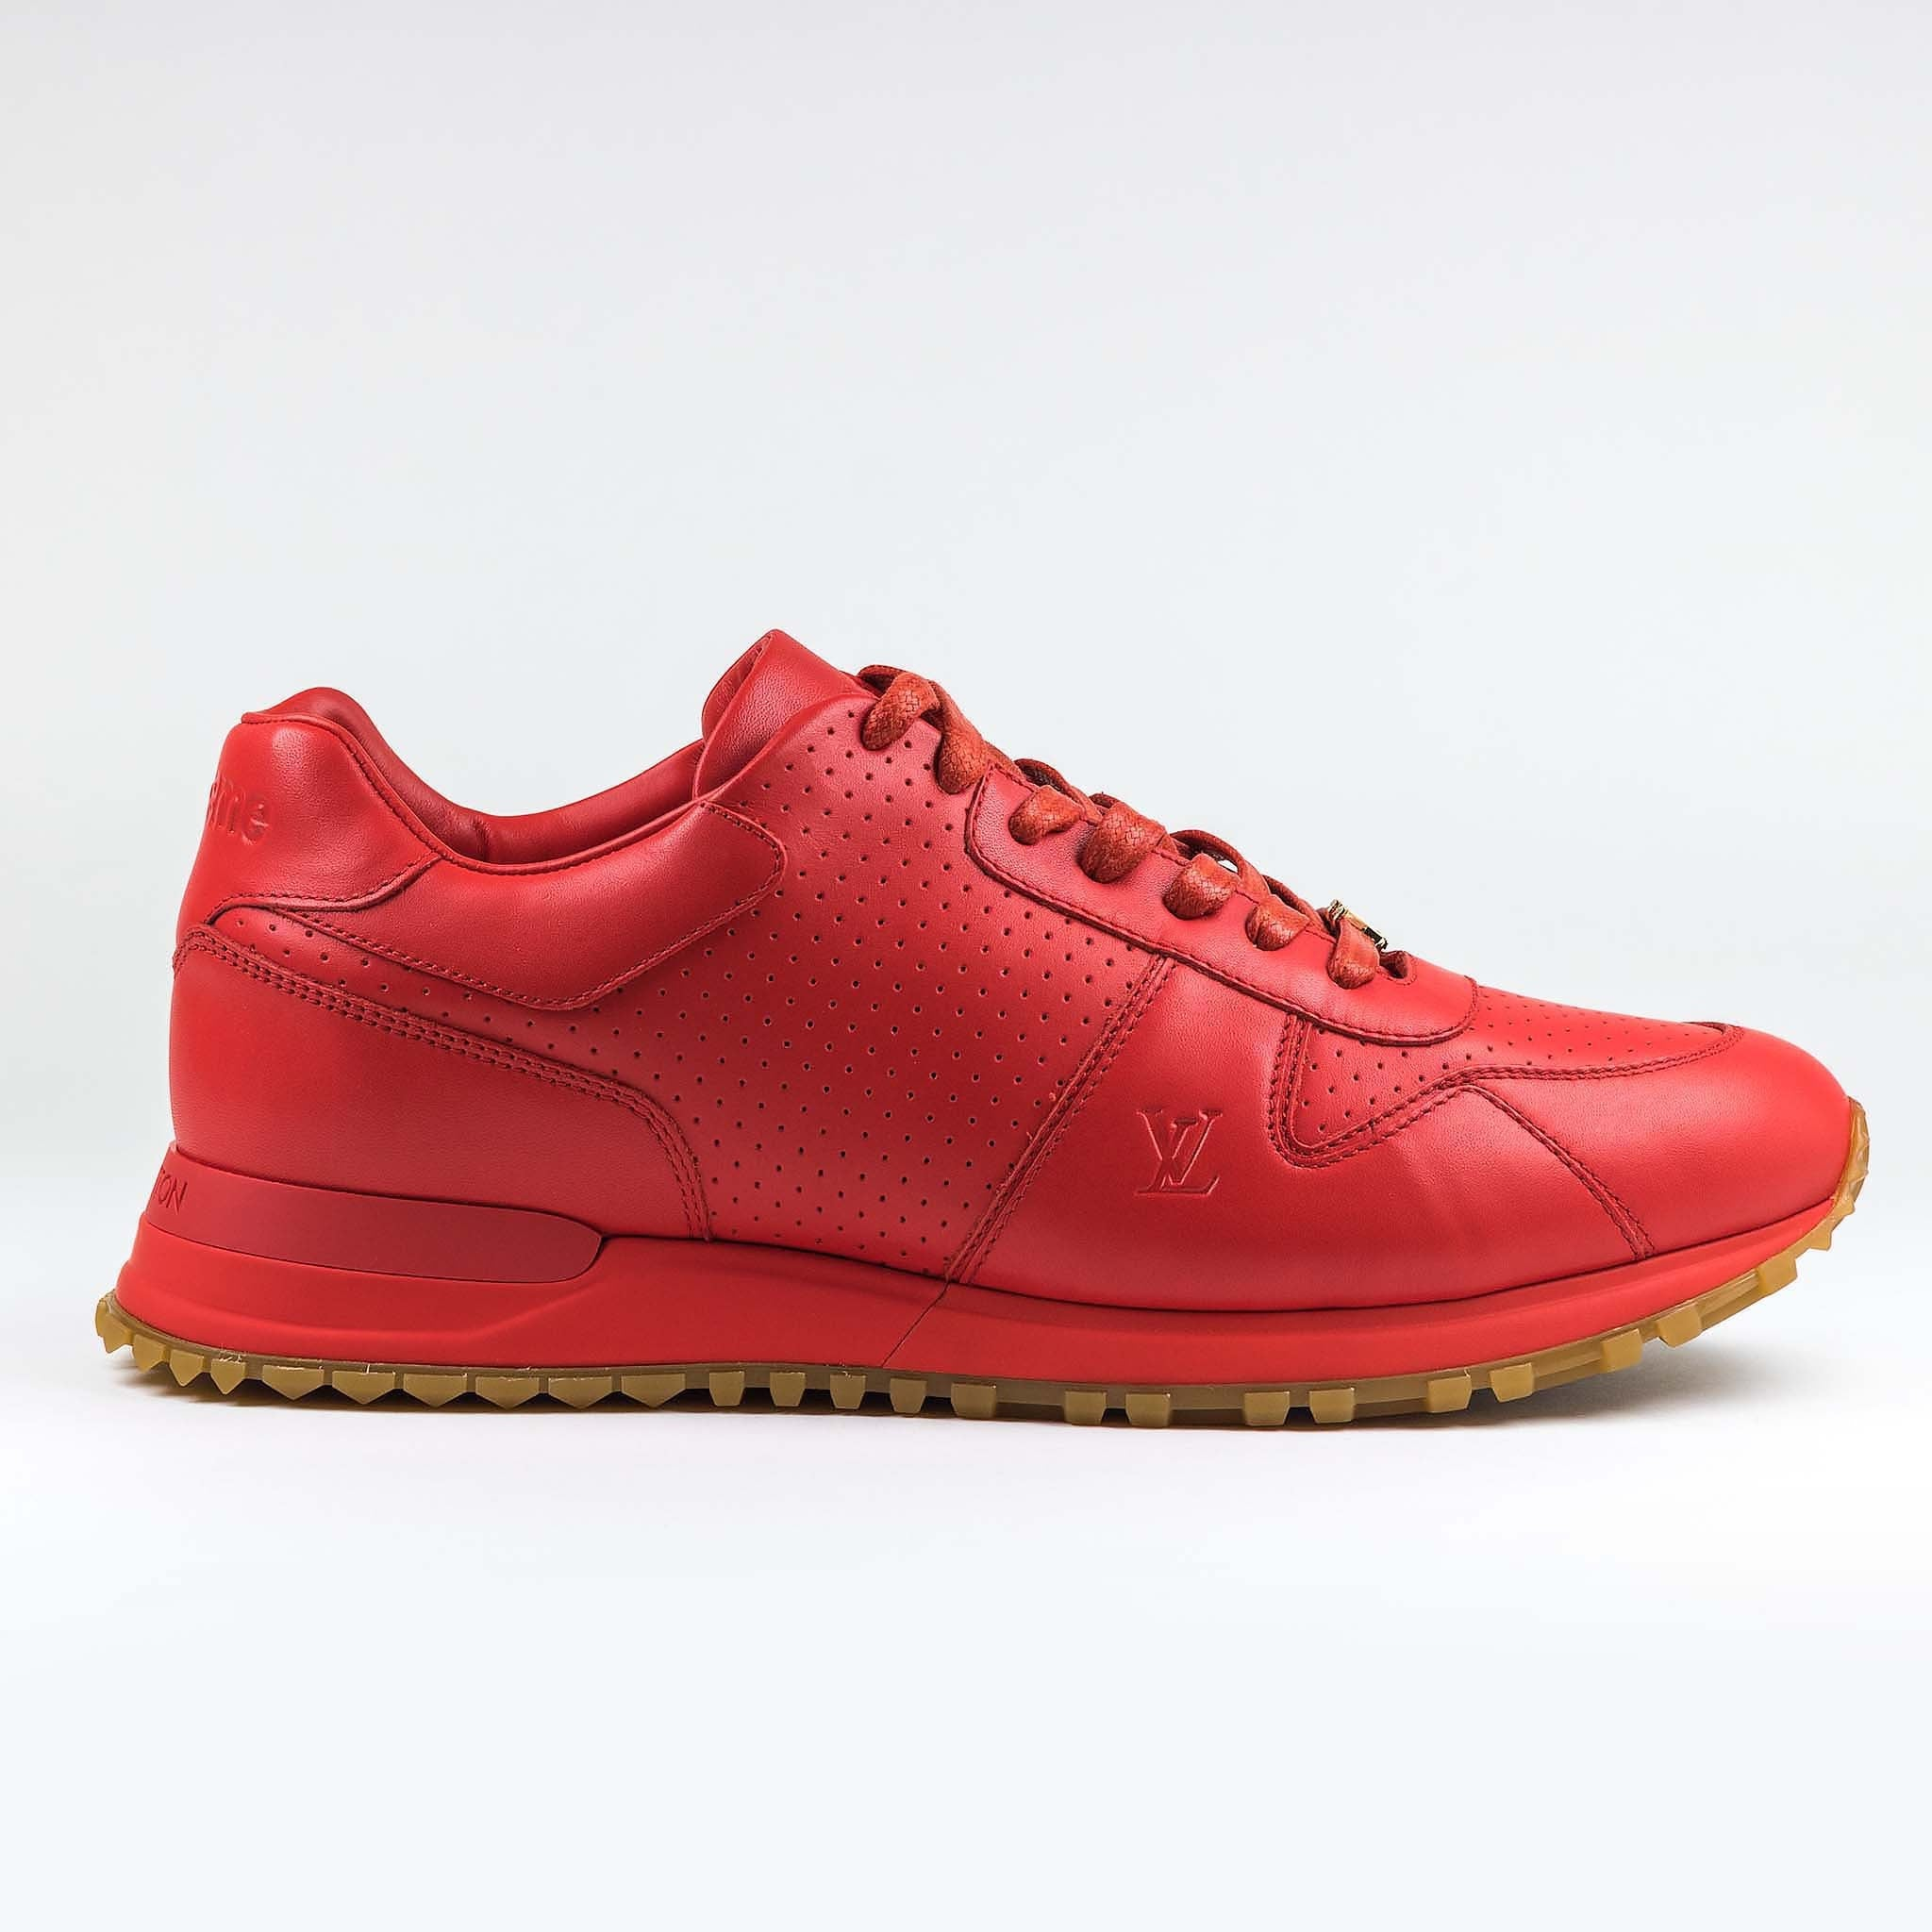 5f41de295b77 Supreme x Louis Vuitton Red Run Away Sneaker – Crepslocker